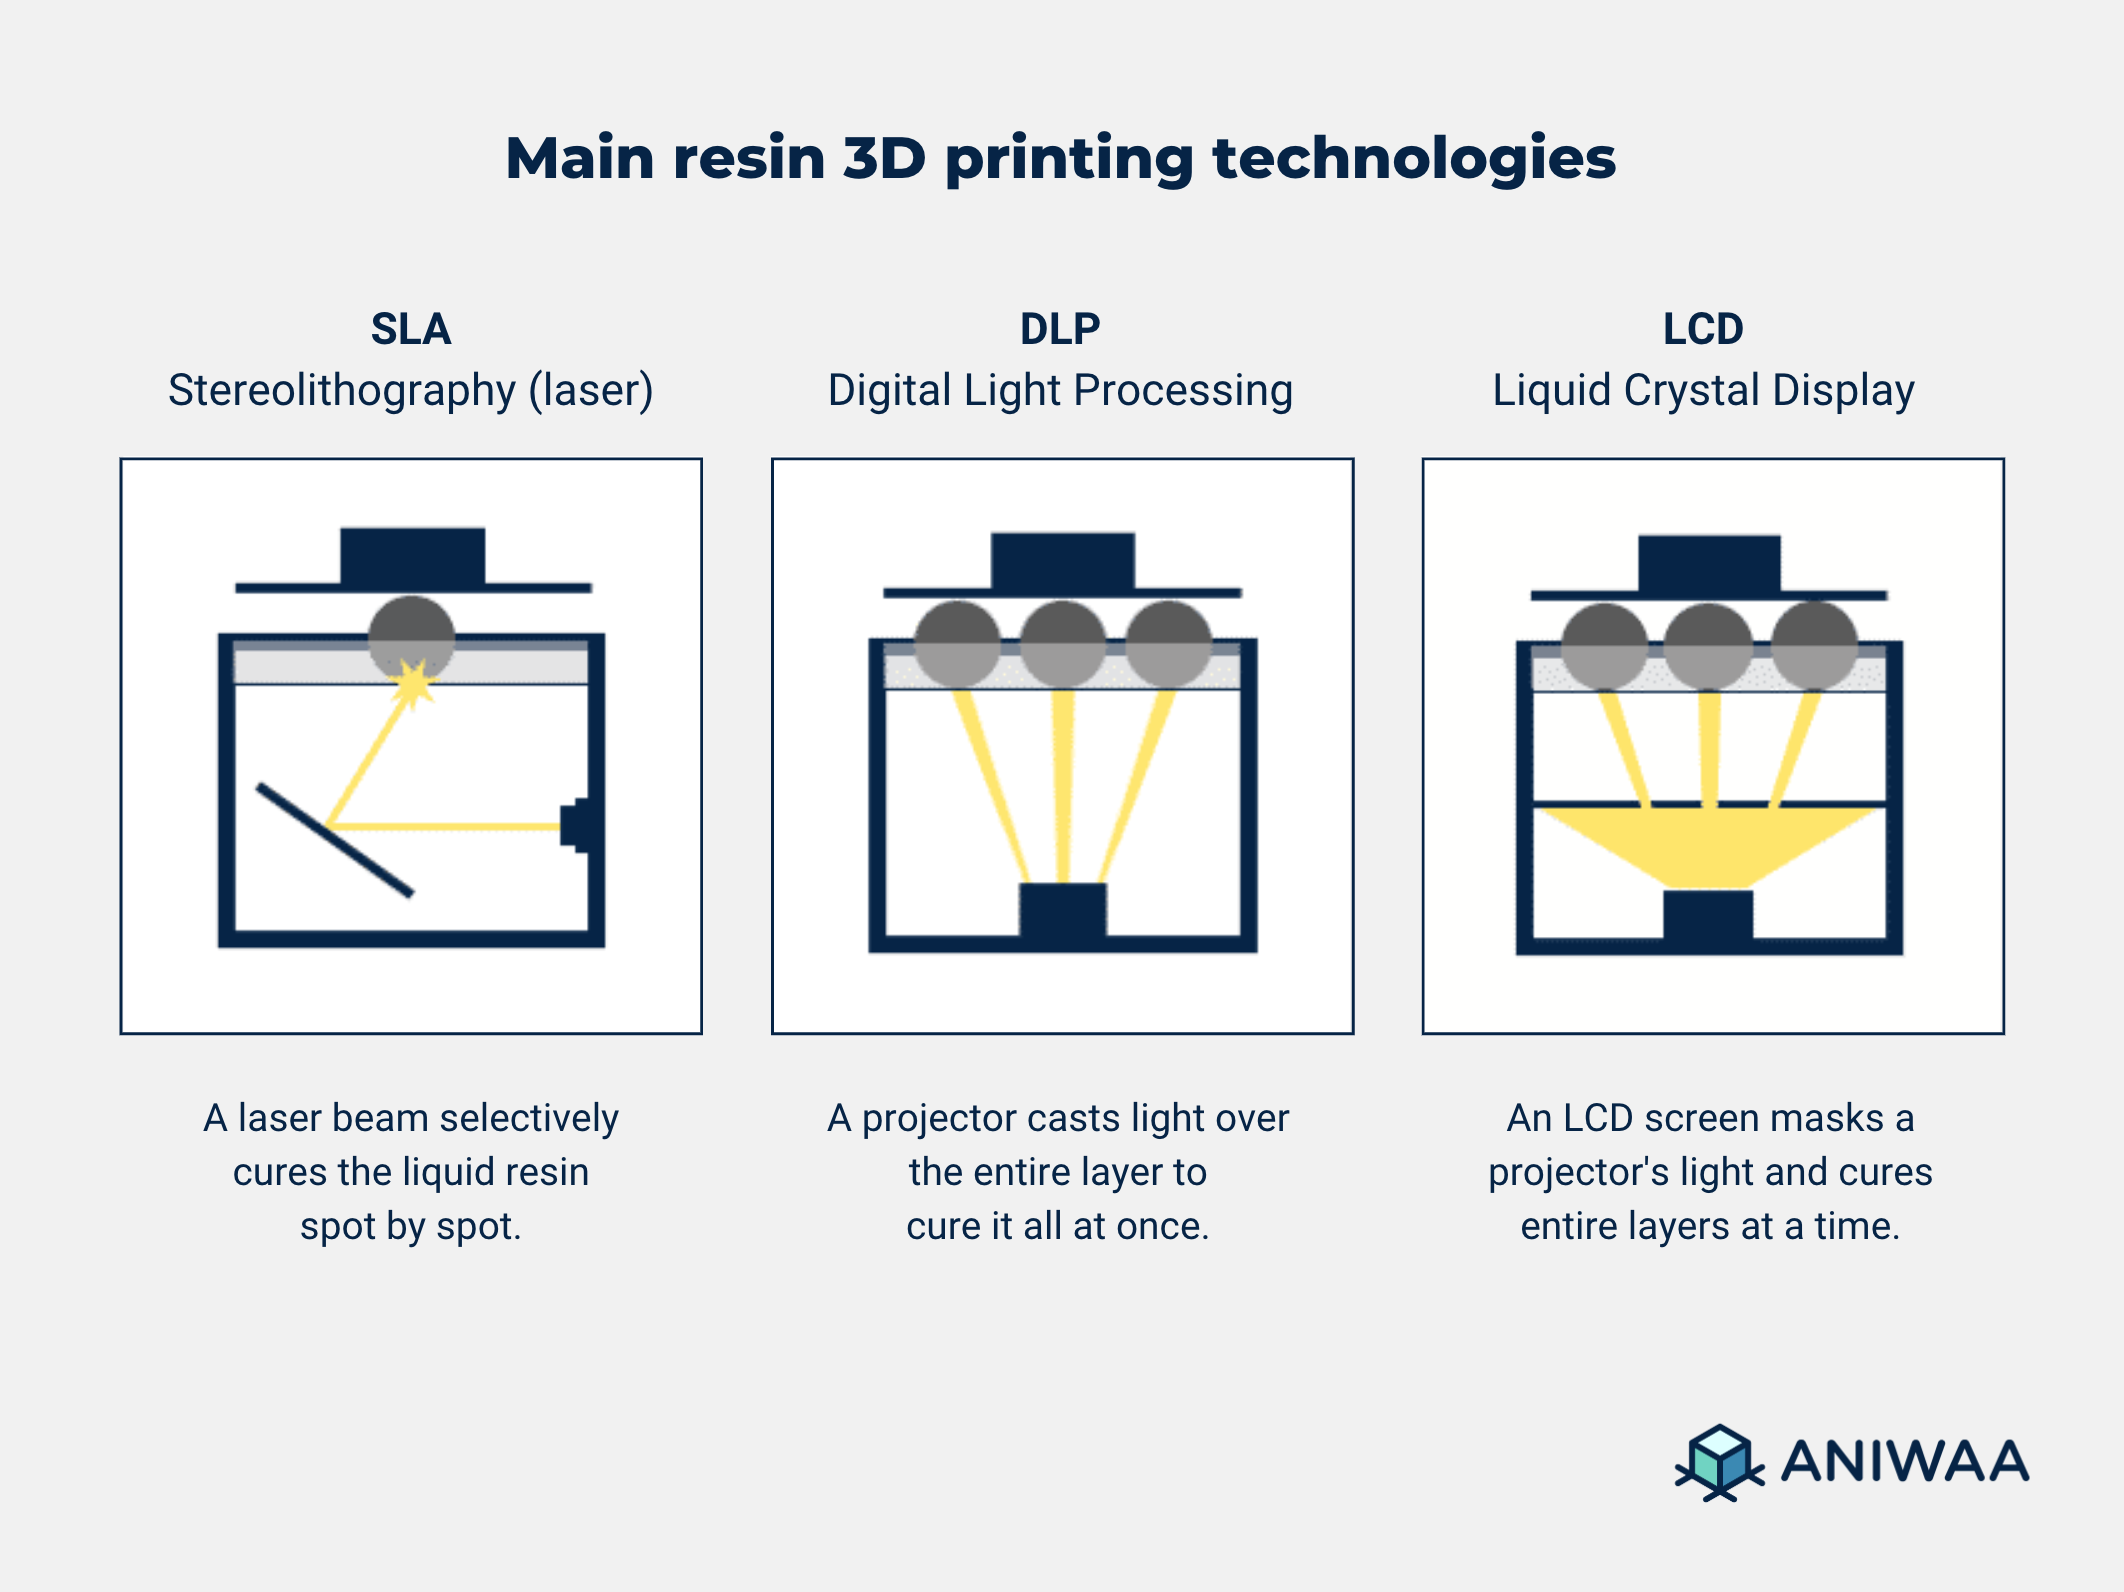 The three main resin 3D printing technologies.